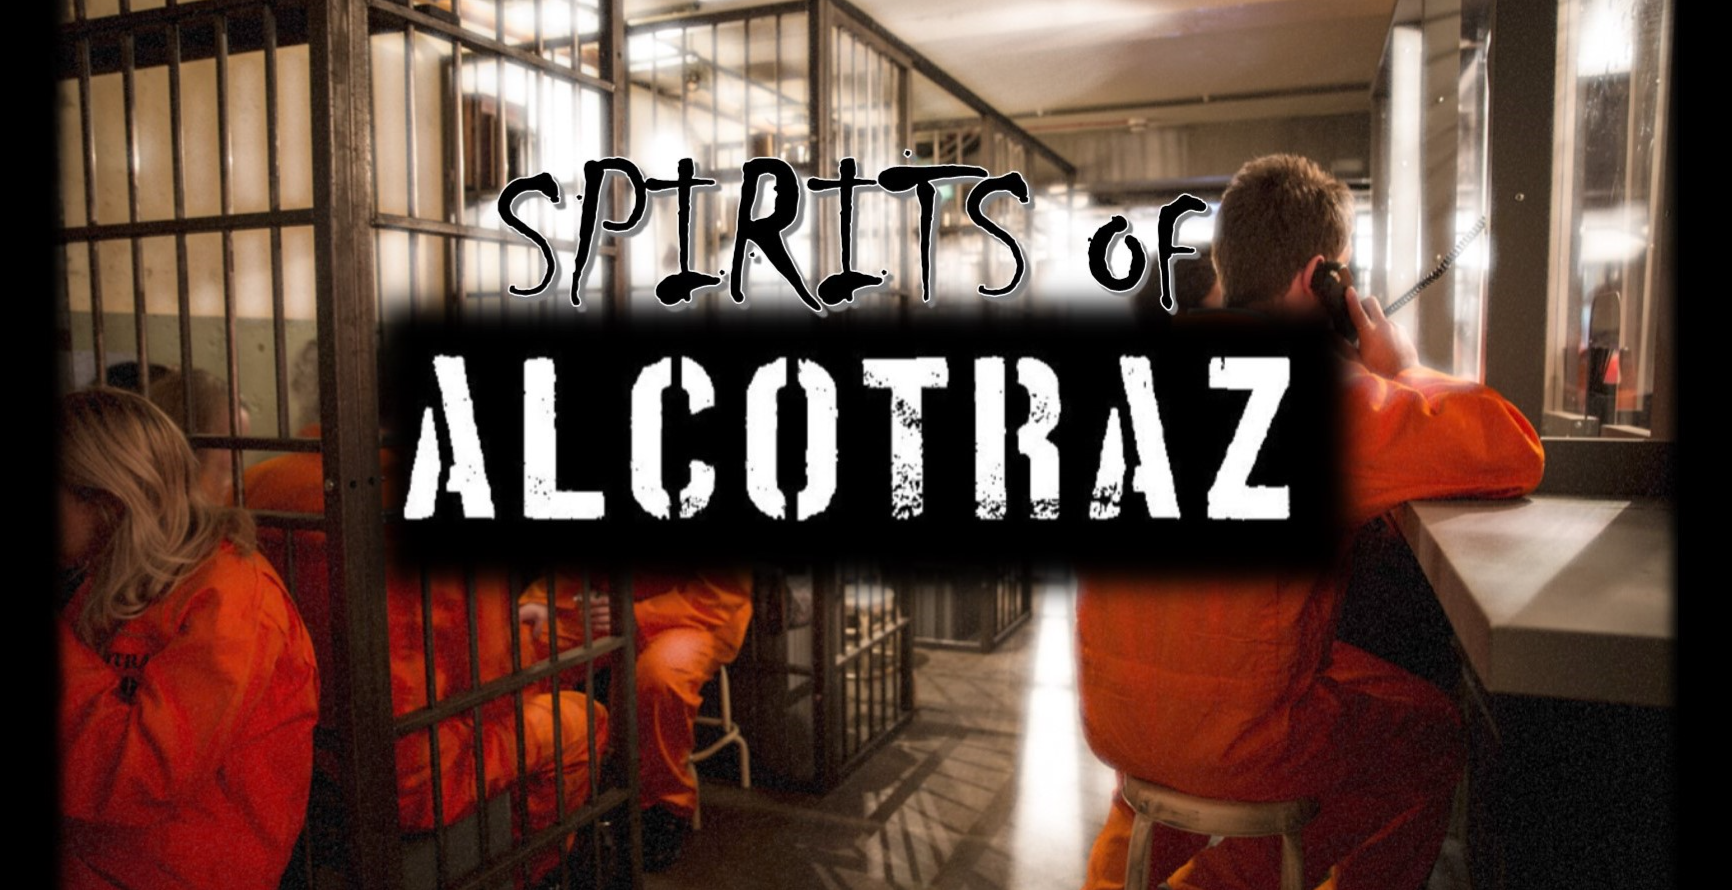 THE SPIRITS OF ALCOTRAZ - HALLOWEEN SPECIAL